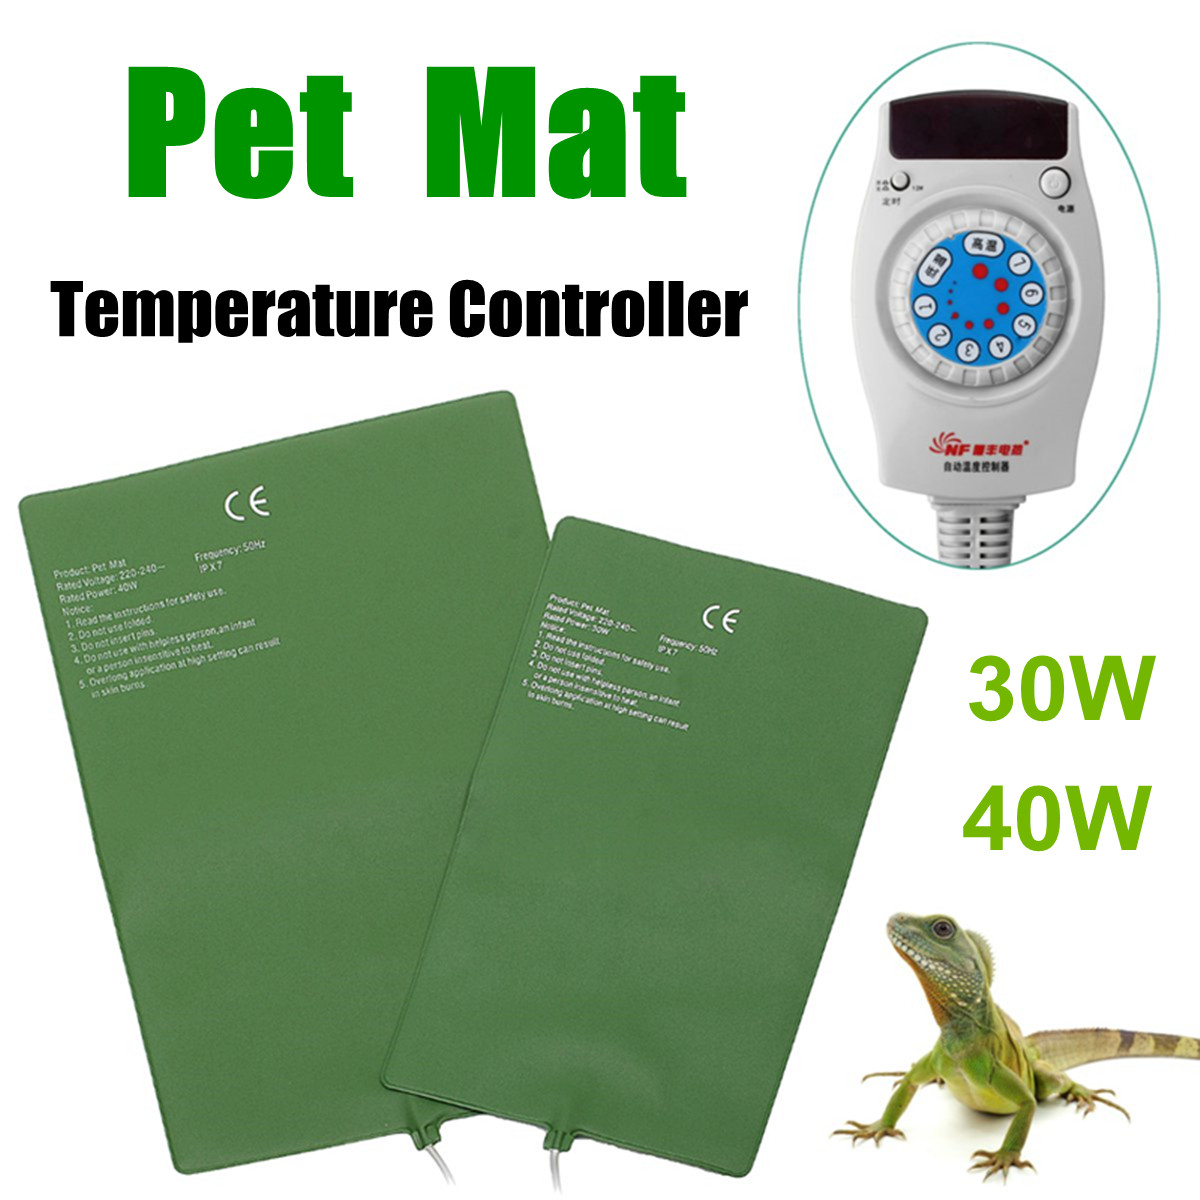 30/40W Aquarium Reptiles Heat Mat Pet Turtle Snakes Heating Warm Pad Green Terrarium Automatic Temp Controller Reptiles Supplies